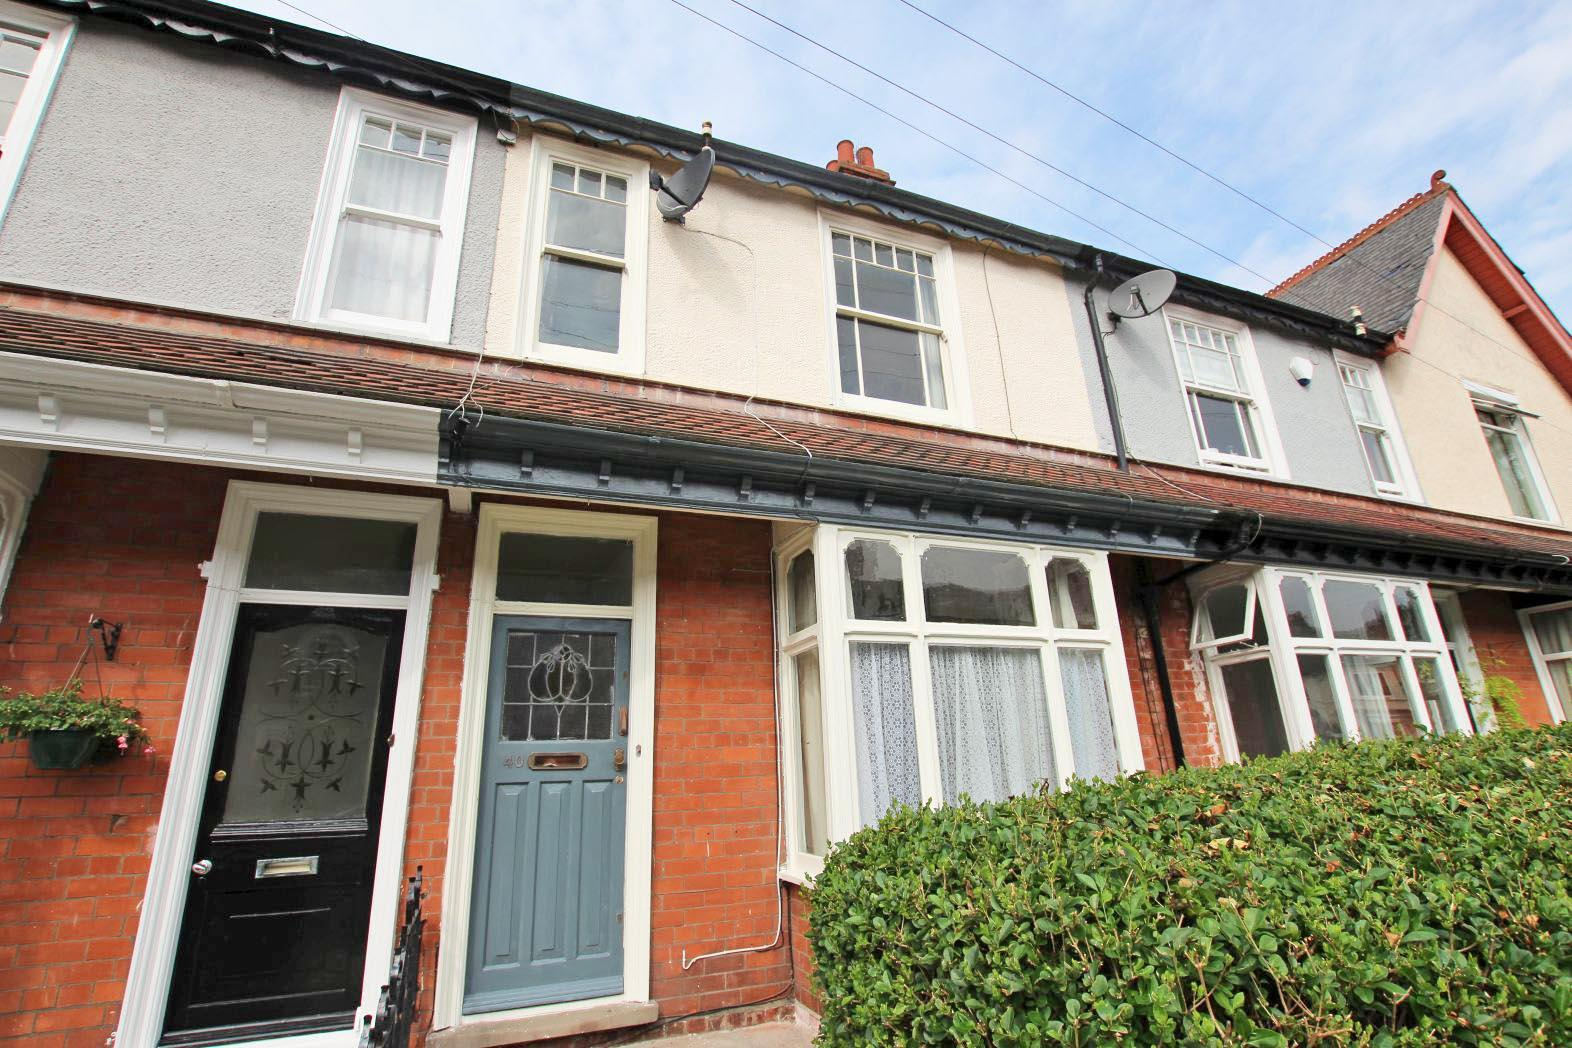 3 Bedrooms Terraced House for sale in ST AUGUSTINE AVENUE, GRIMSBY